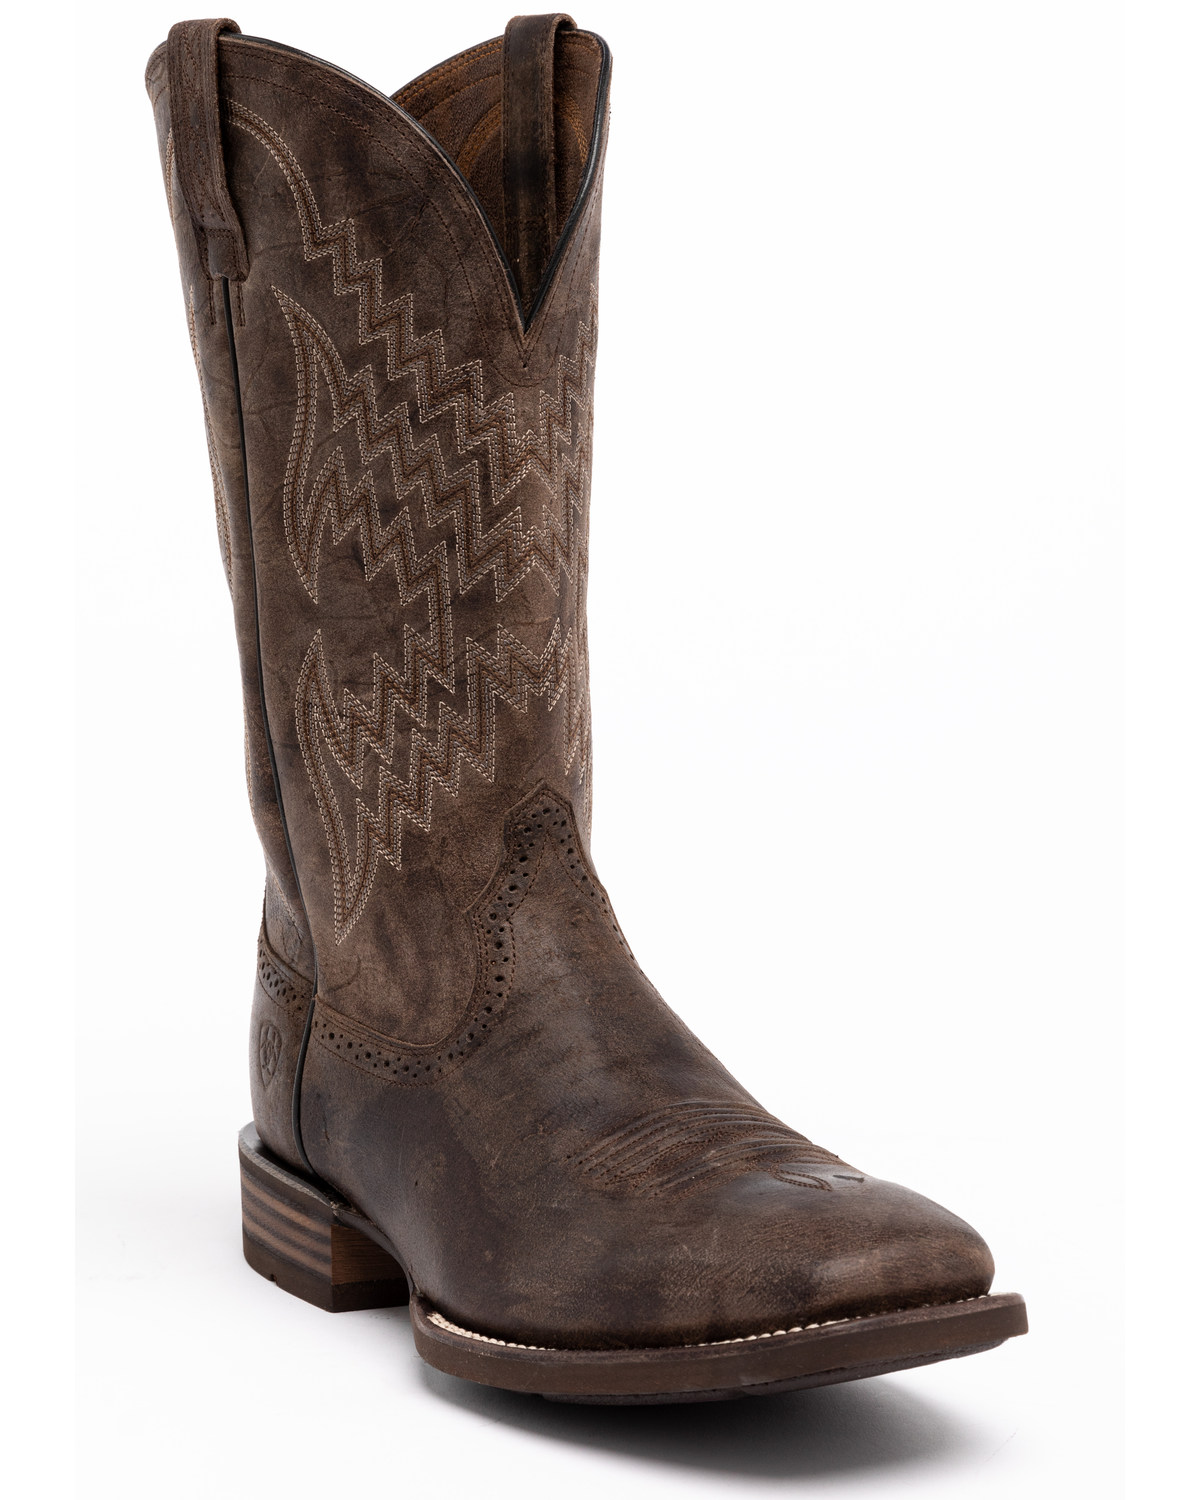 a1a8df12b10 Ariat Men's Quickdraw Tycoon Western Boots - Wide Square Toe